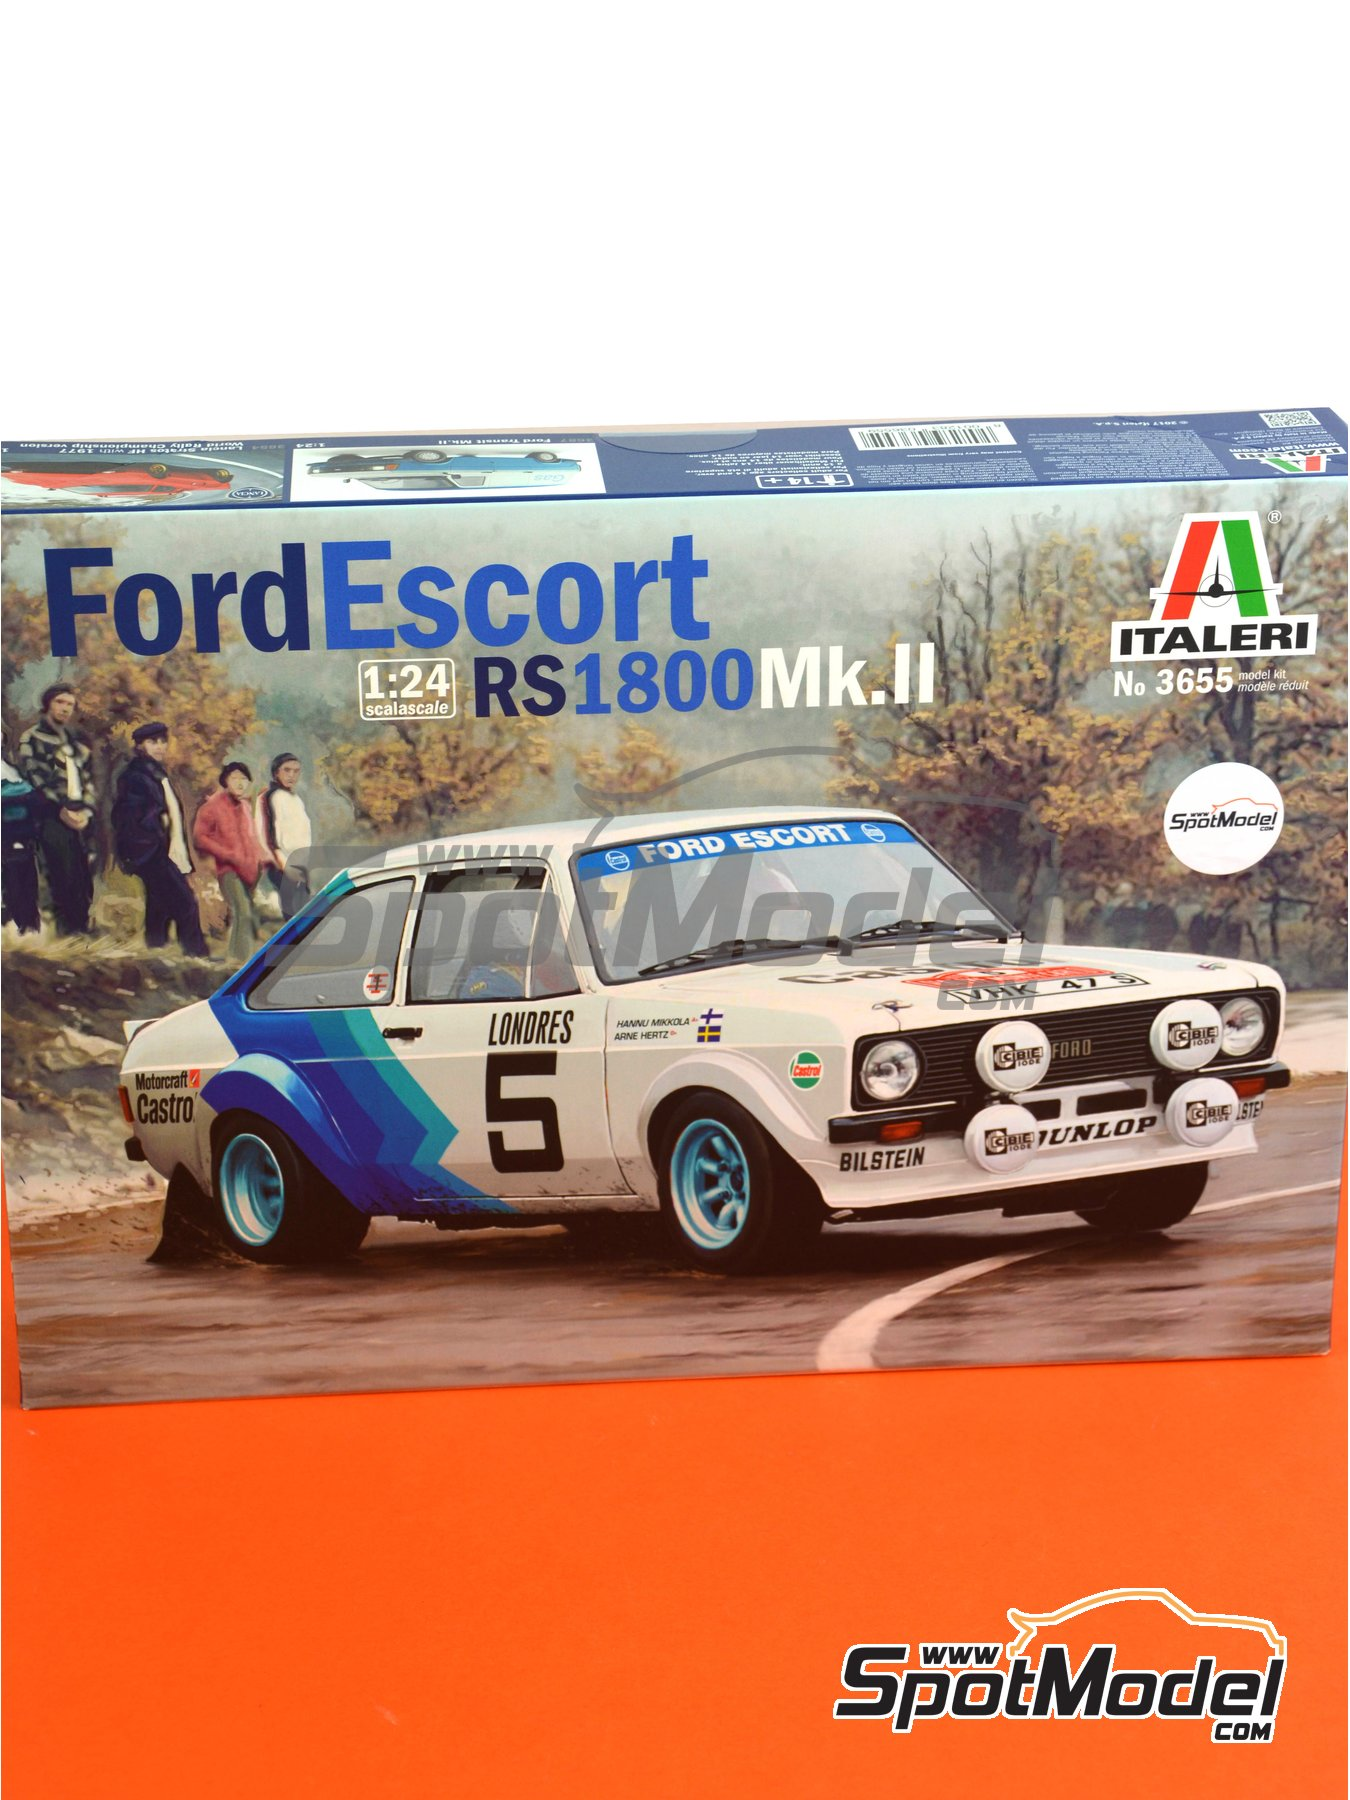 Ford Escort Mk. II RS1800 - Montecarlo Rally 1979 | Model car kit in 1/24 scale manufactured by Italeri (ref. 3655) image